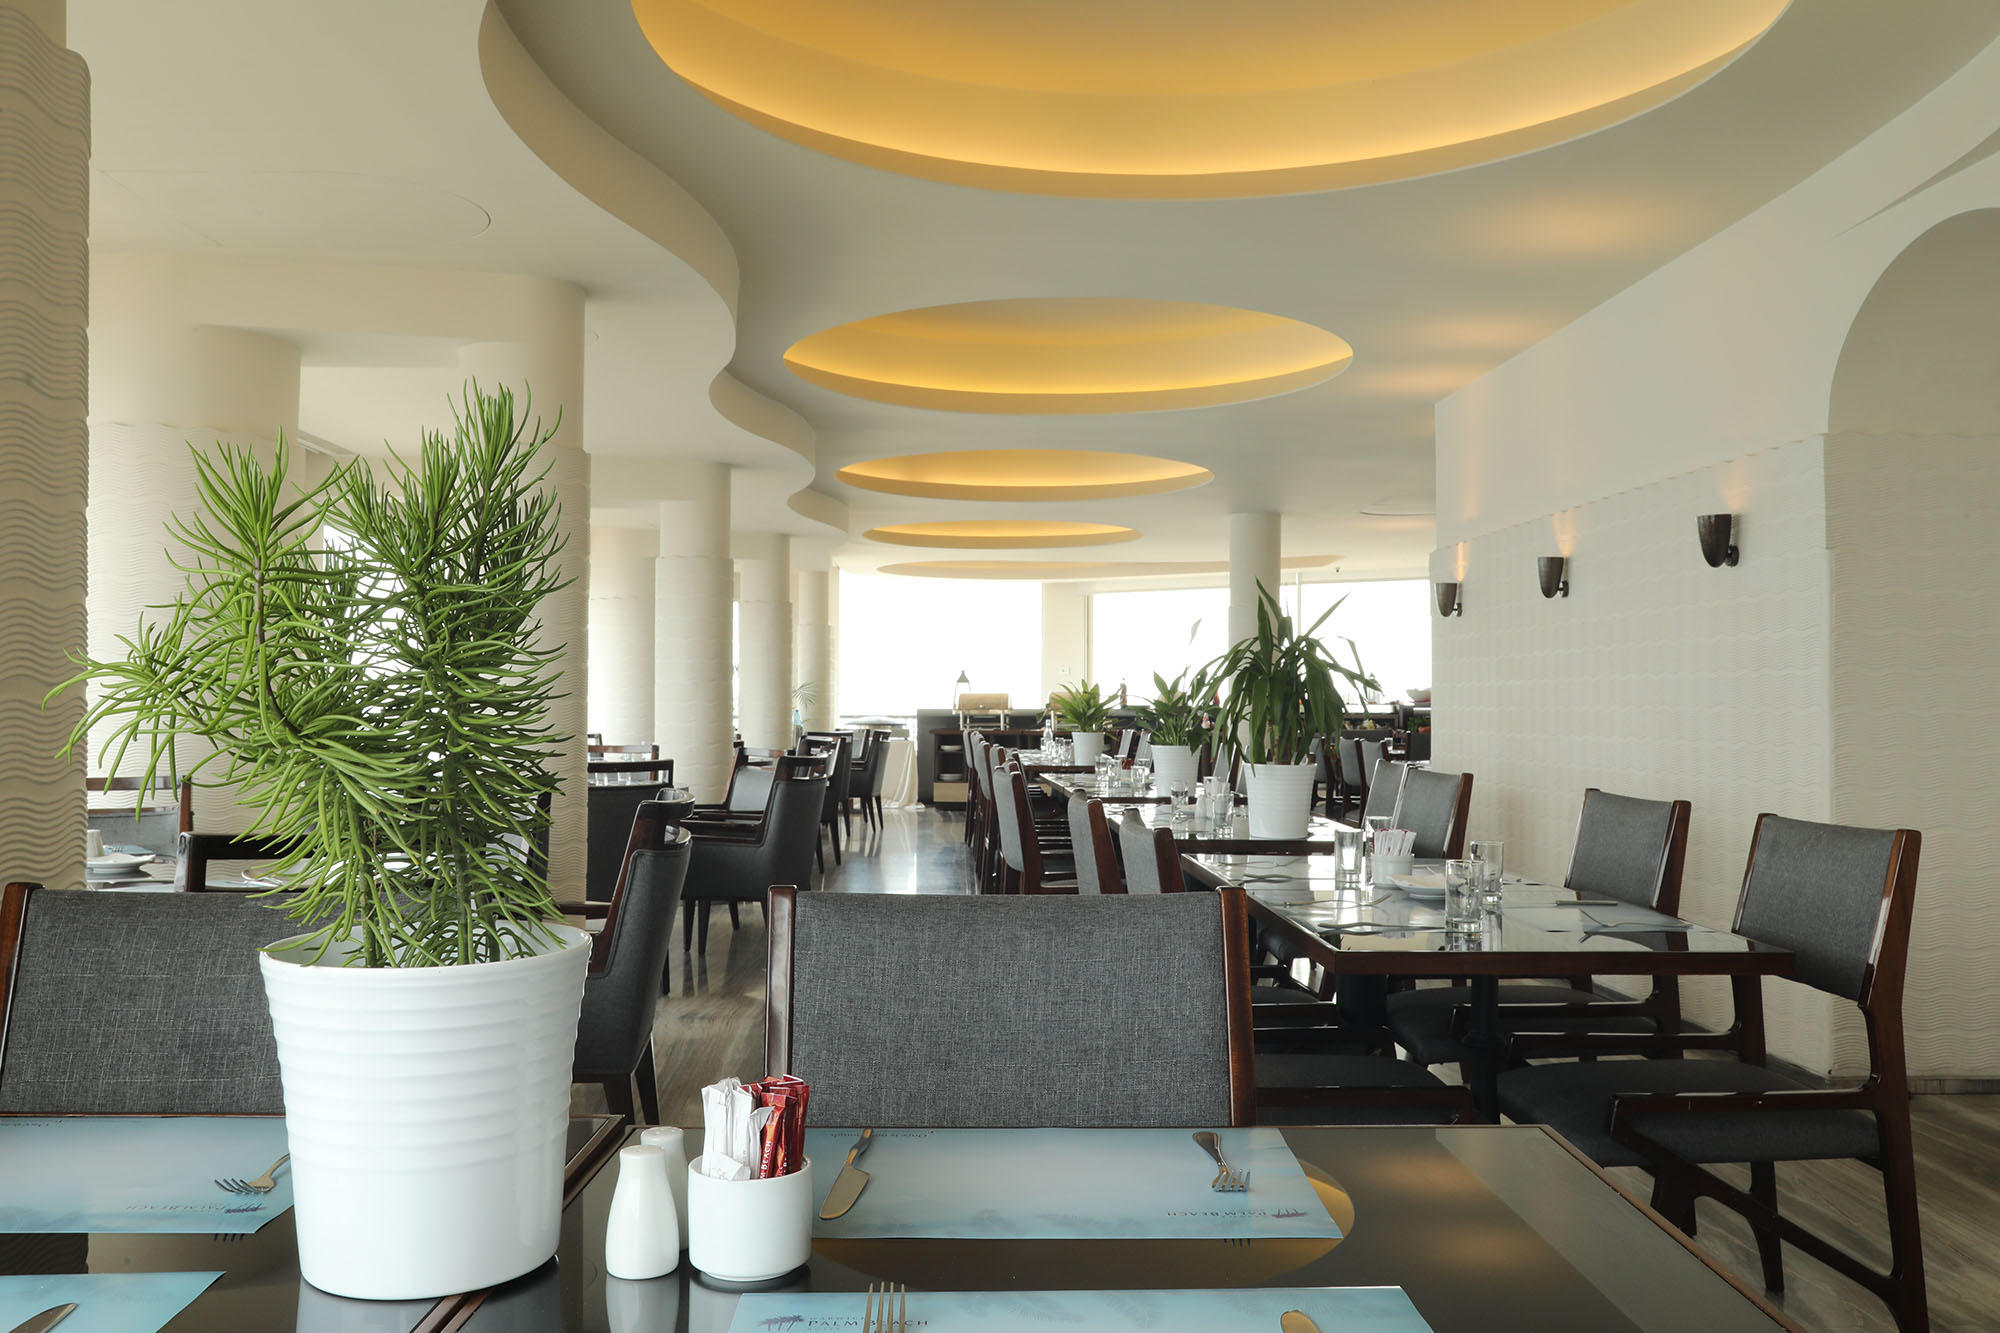 Restaurant Interior Design at Warwick Palm Beach